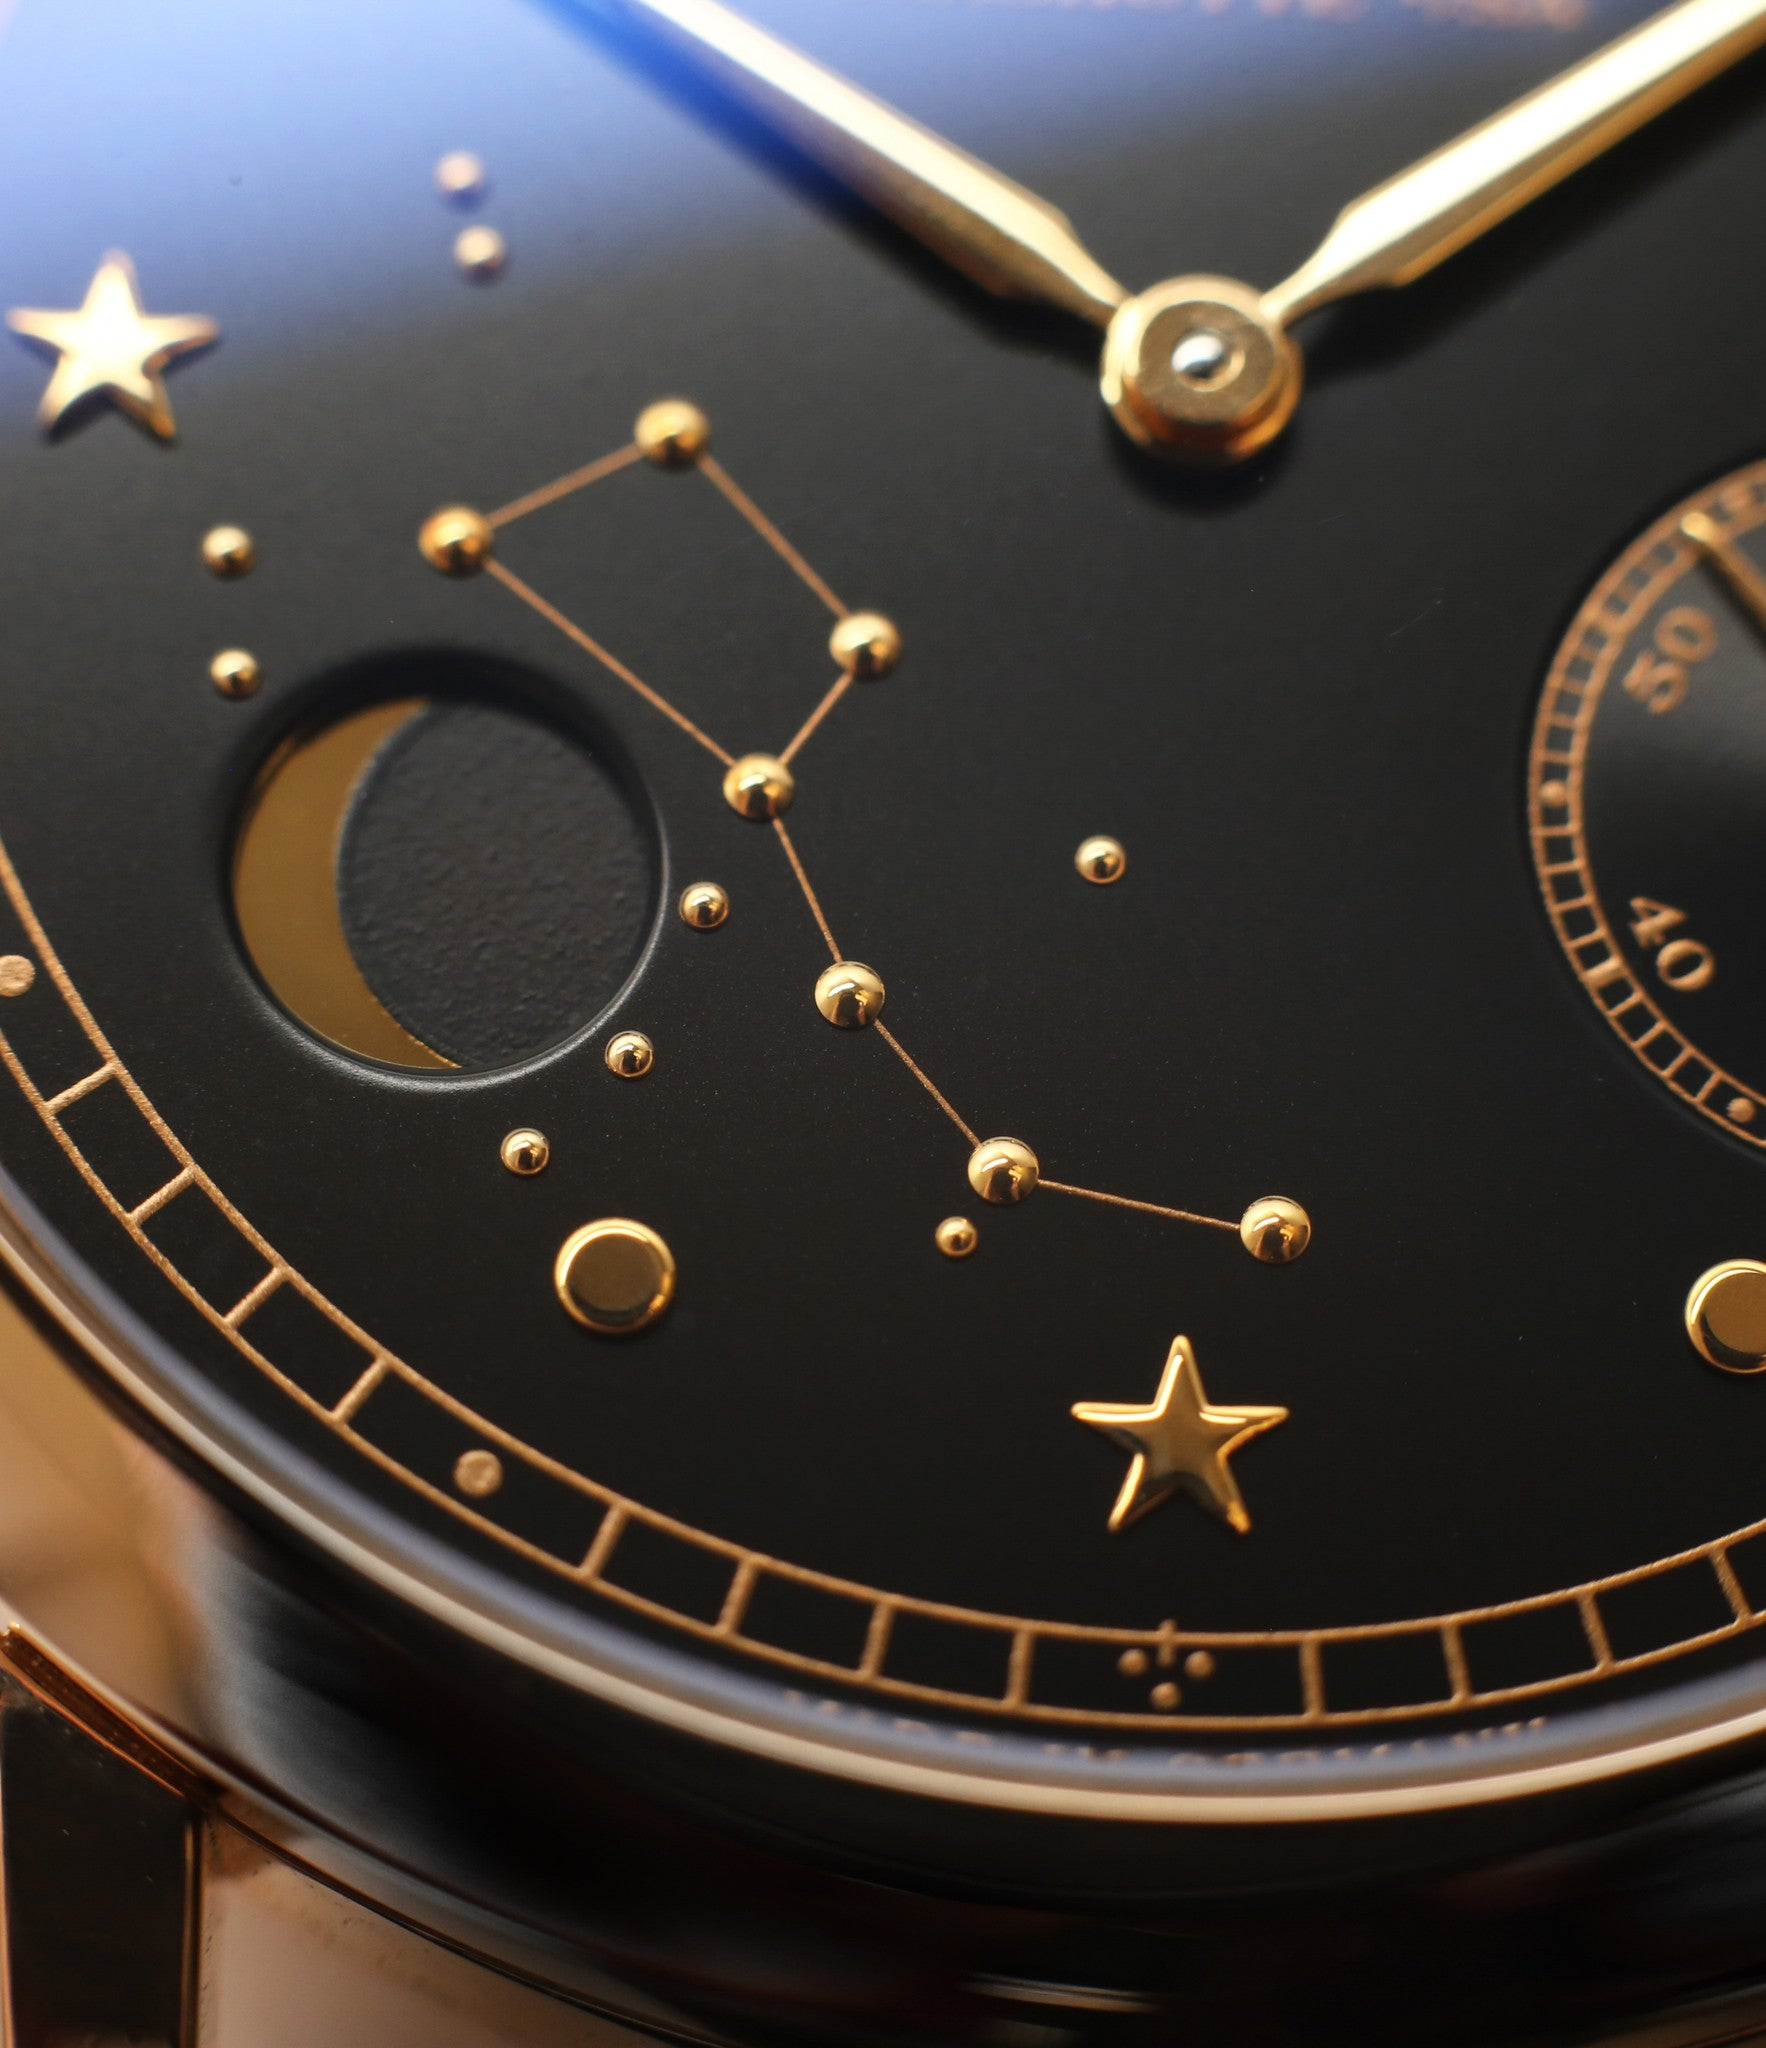 moonphase sub-register buy rare A. Lange & Söhne 1815 Moonphase Hommage a Emil Lange 1849-1922 rose gold black dial watch at A Collected Man curated platform of rare and vintage watches